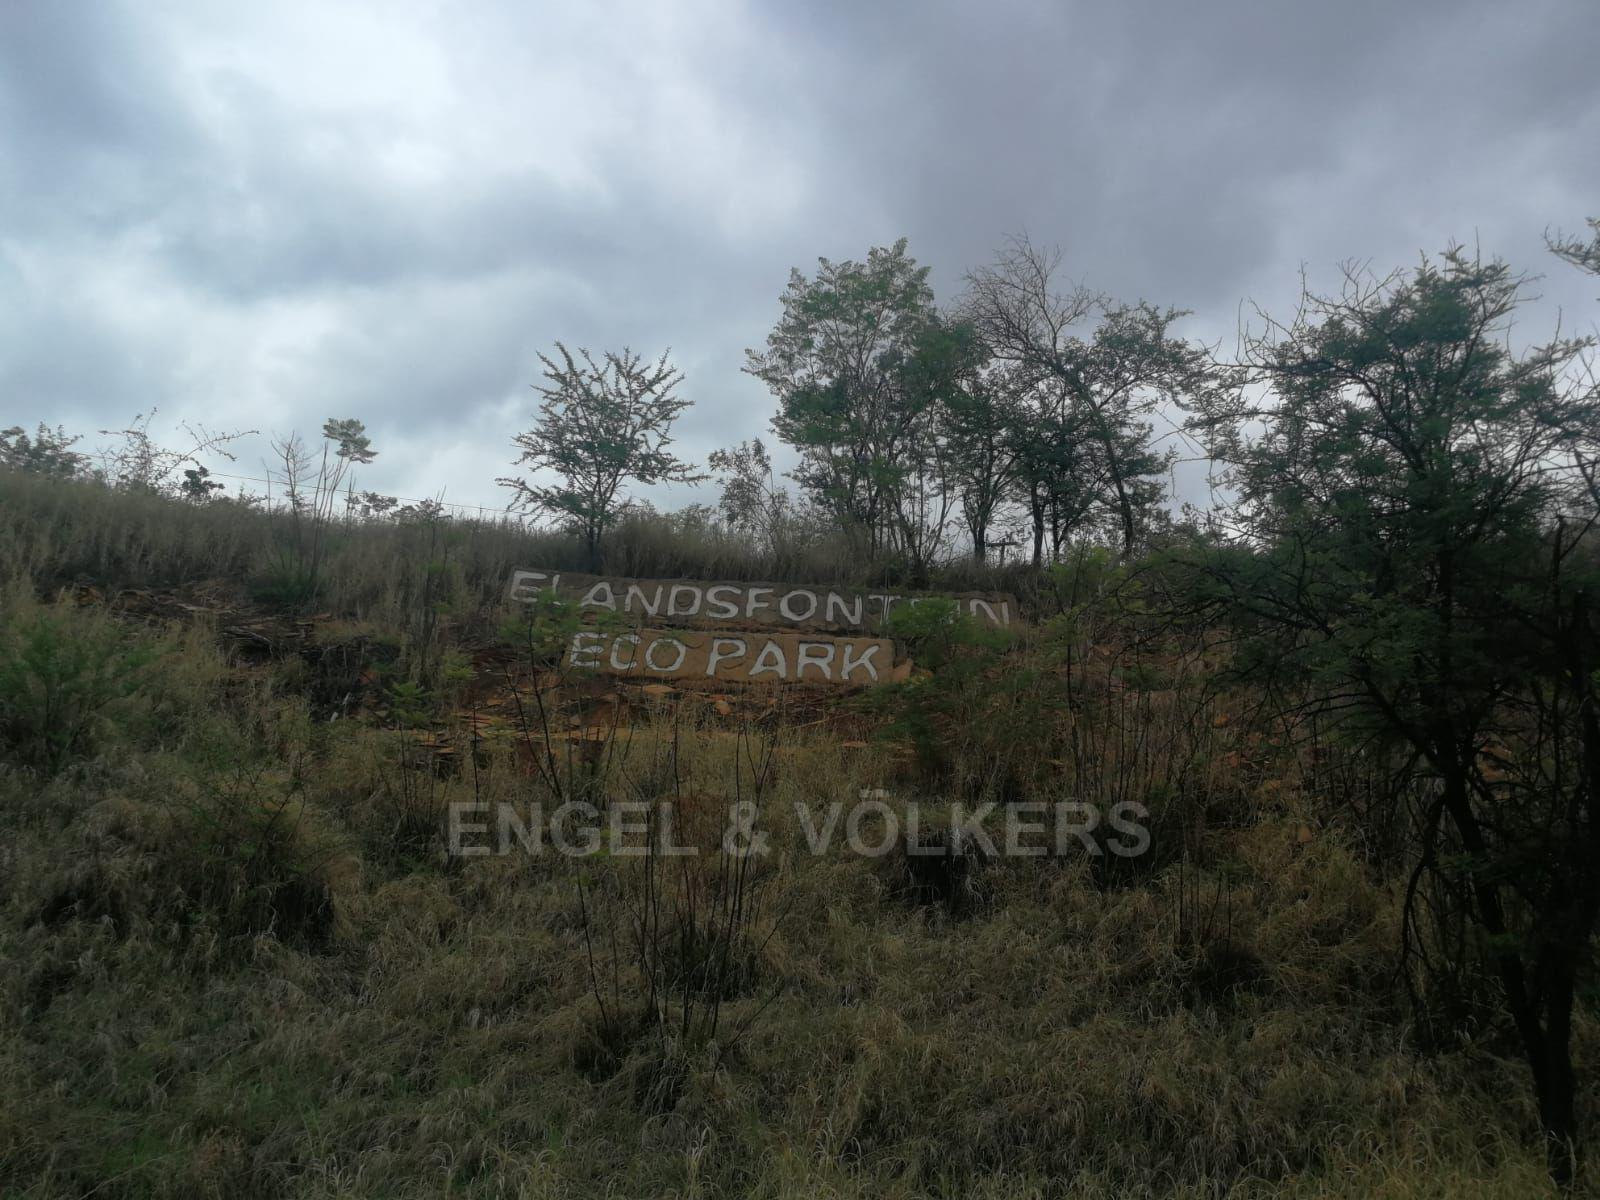 Land in Hartbeespoort Dam Area - Large smallholding